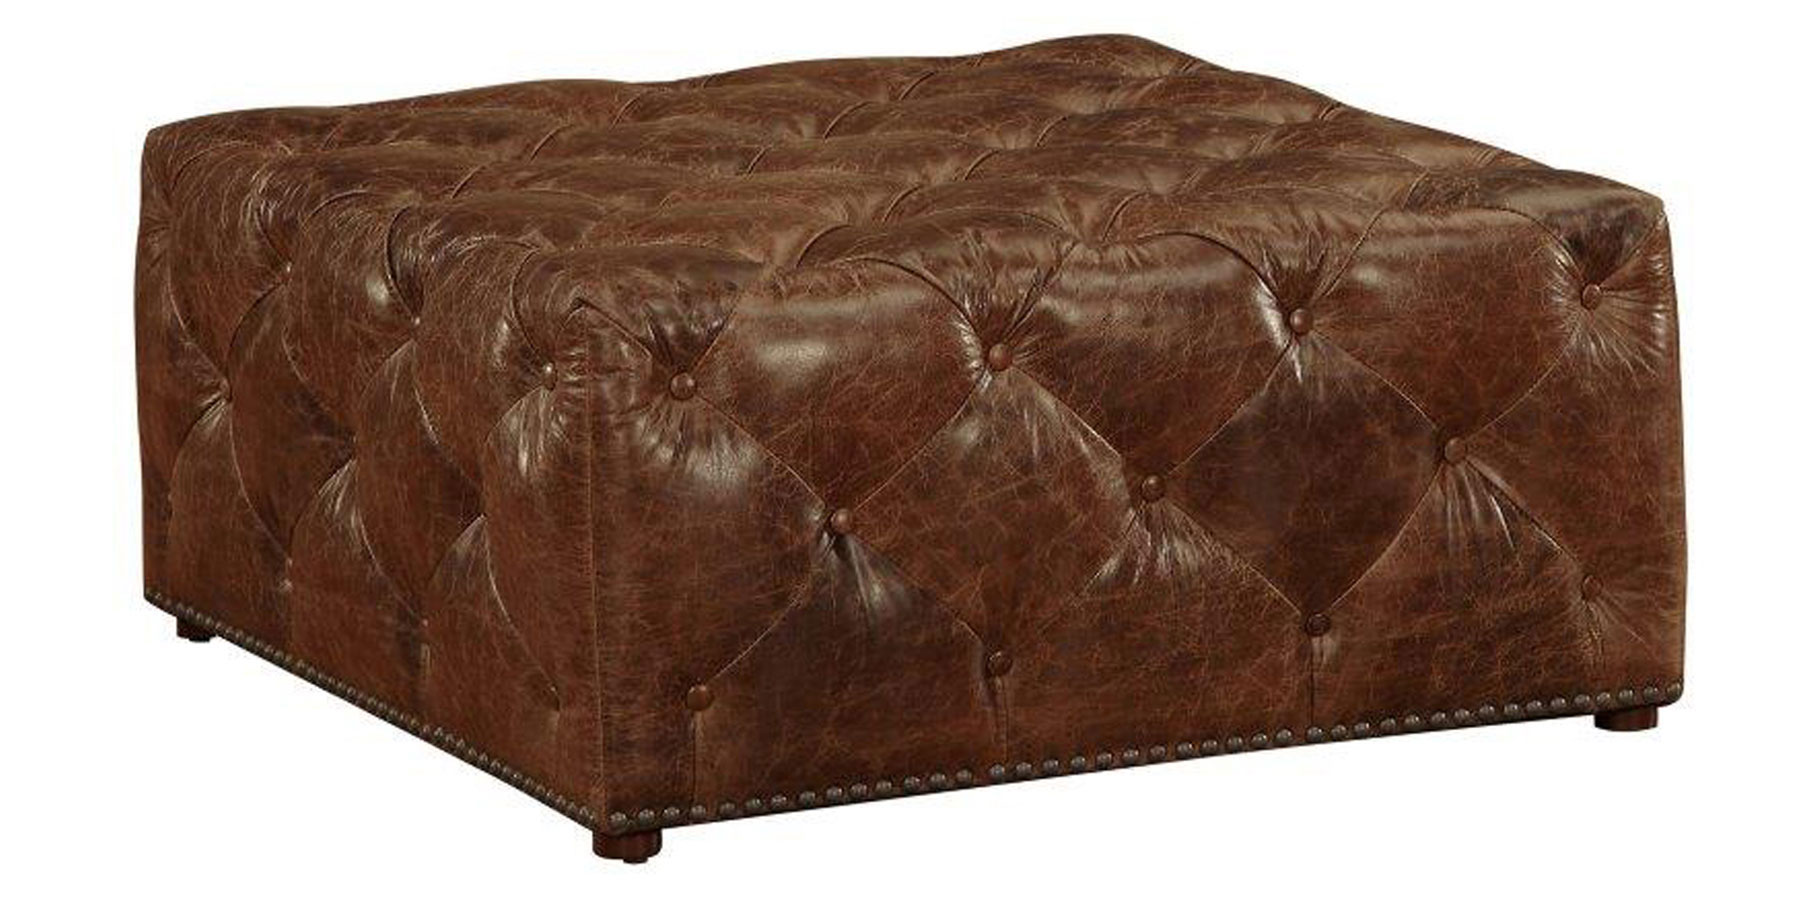 Porter Ready To Ship 40 Inch Square Leather Tufted